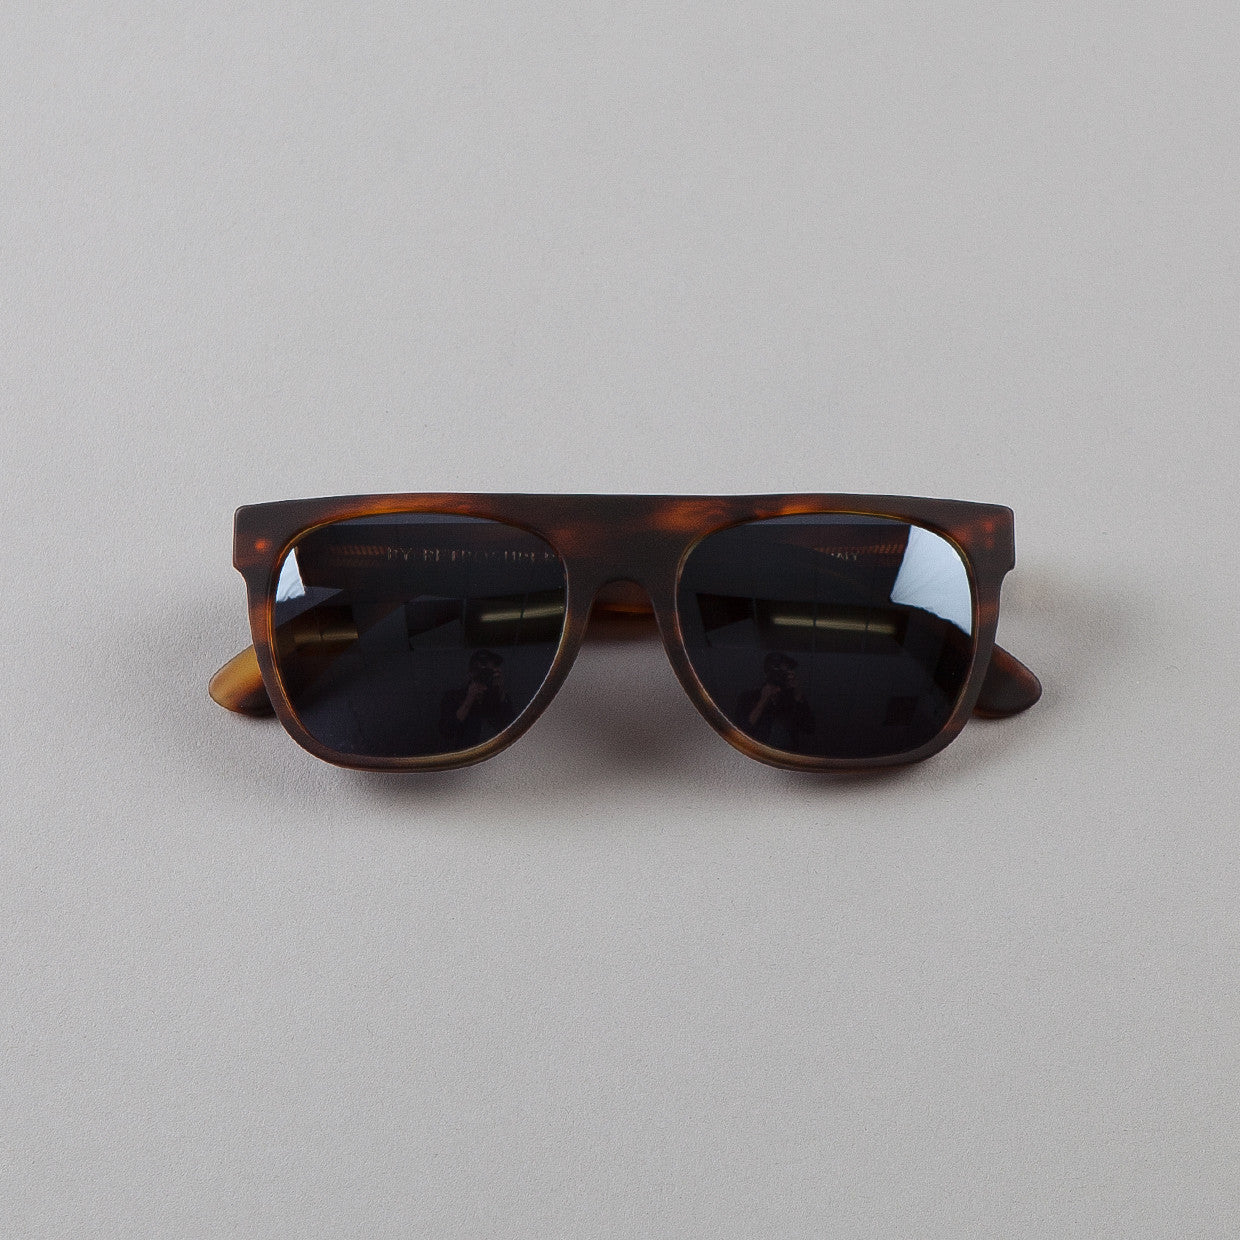 Super Flat Top Seafar Sunglasses